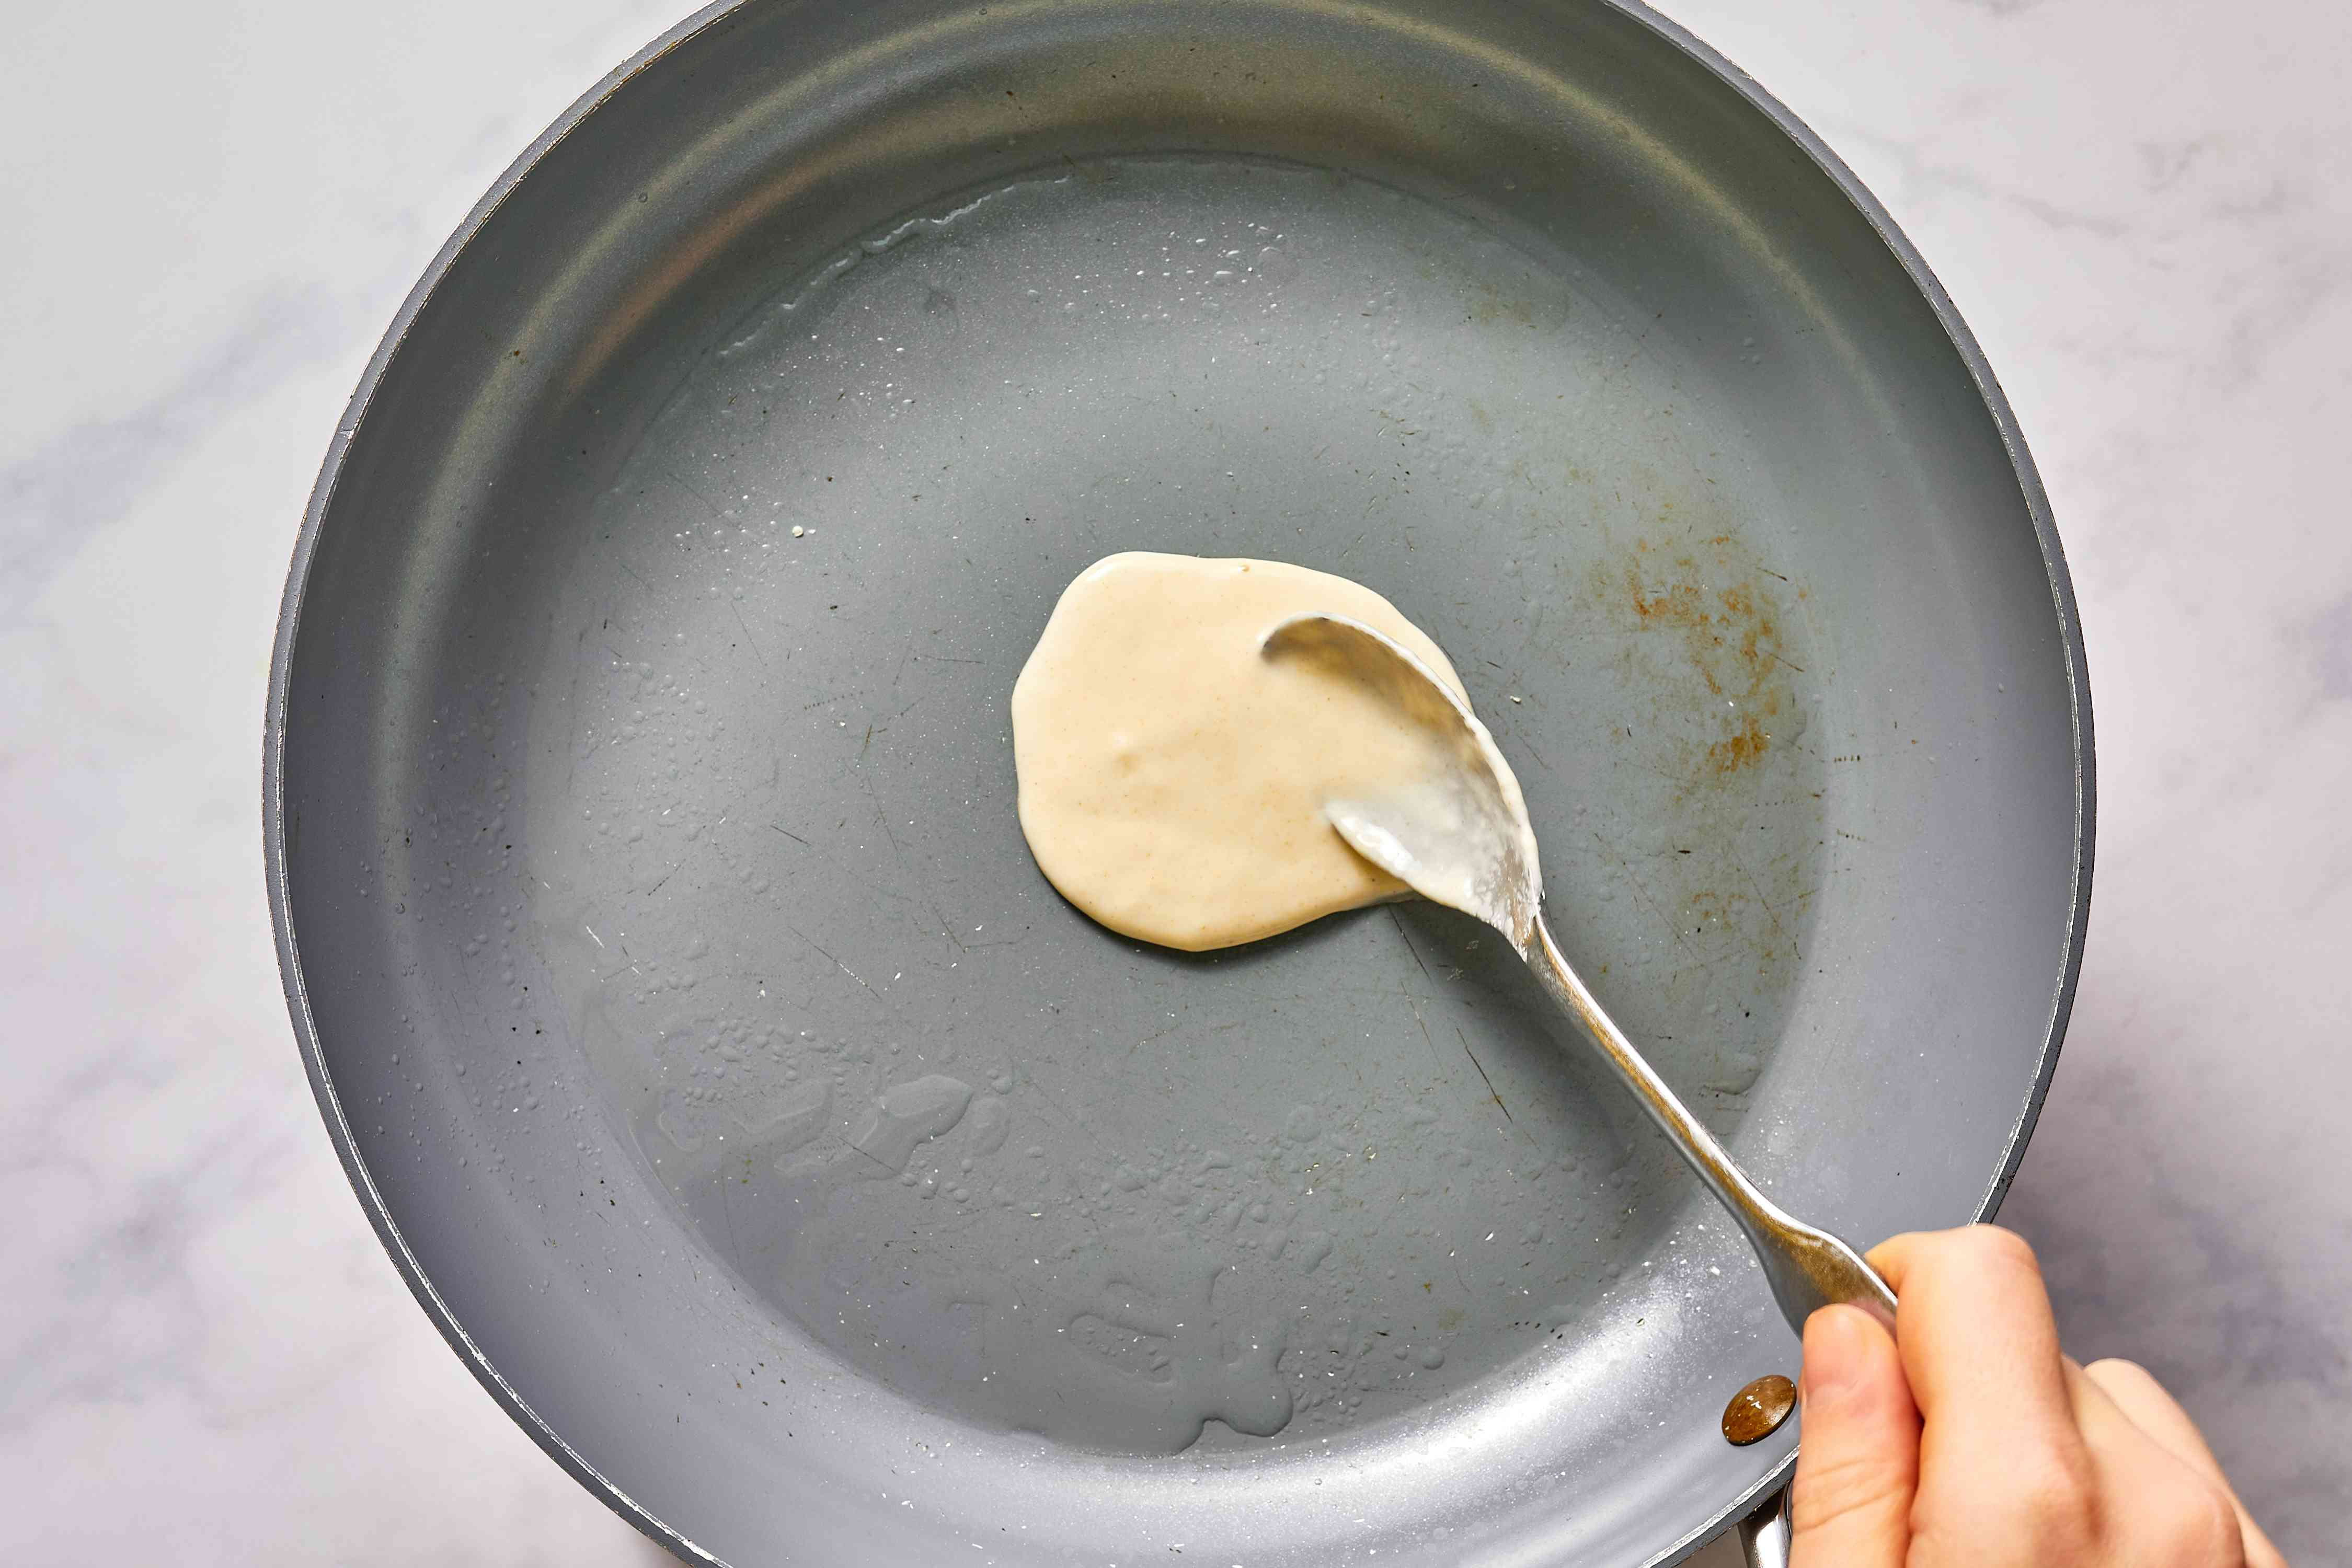 Adding spring roll wrapper batter to hot pan